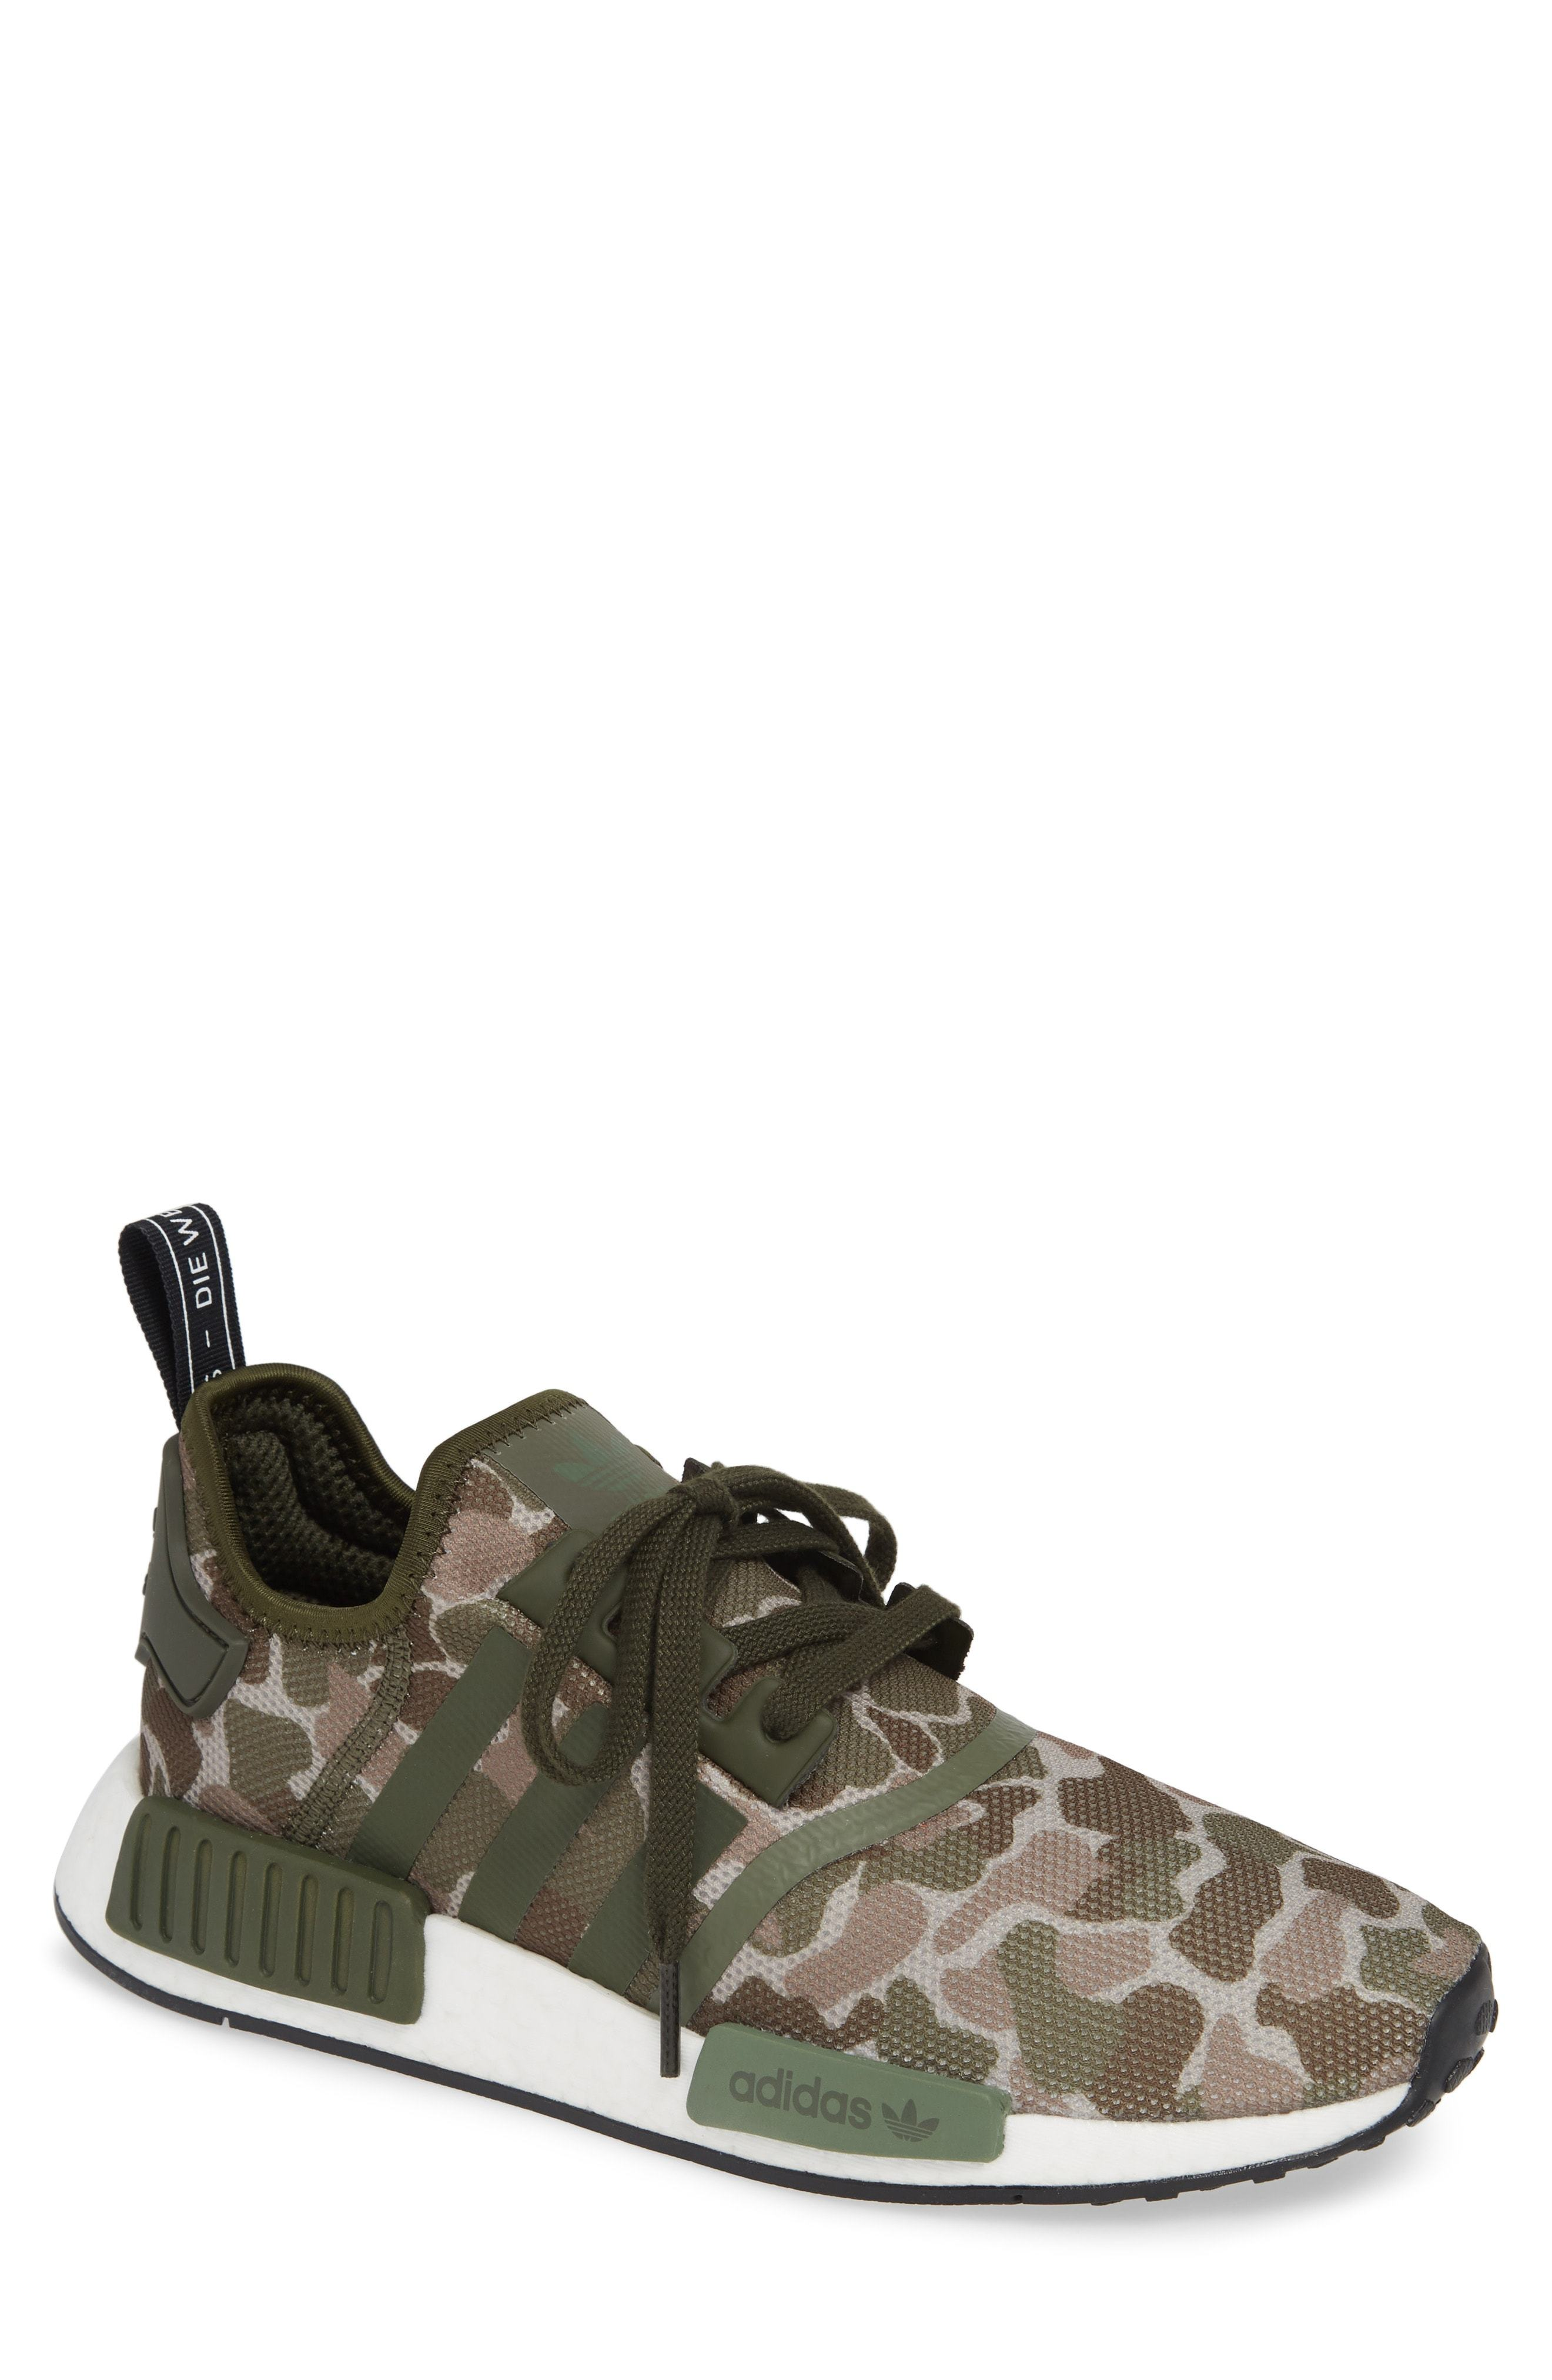 fa11a1c31e7d9 ... Olive Camouflage Athletic Shoes adidas Nmd R1 Camo Sneaker